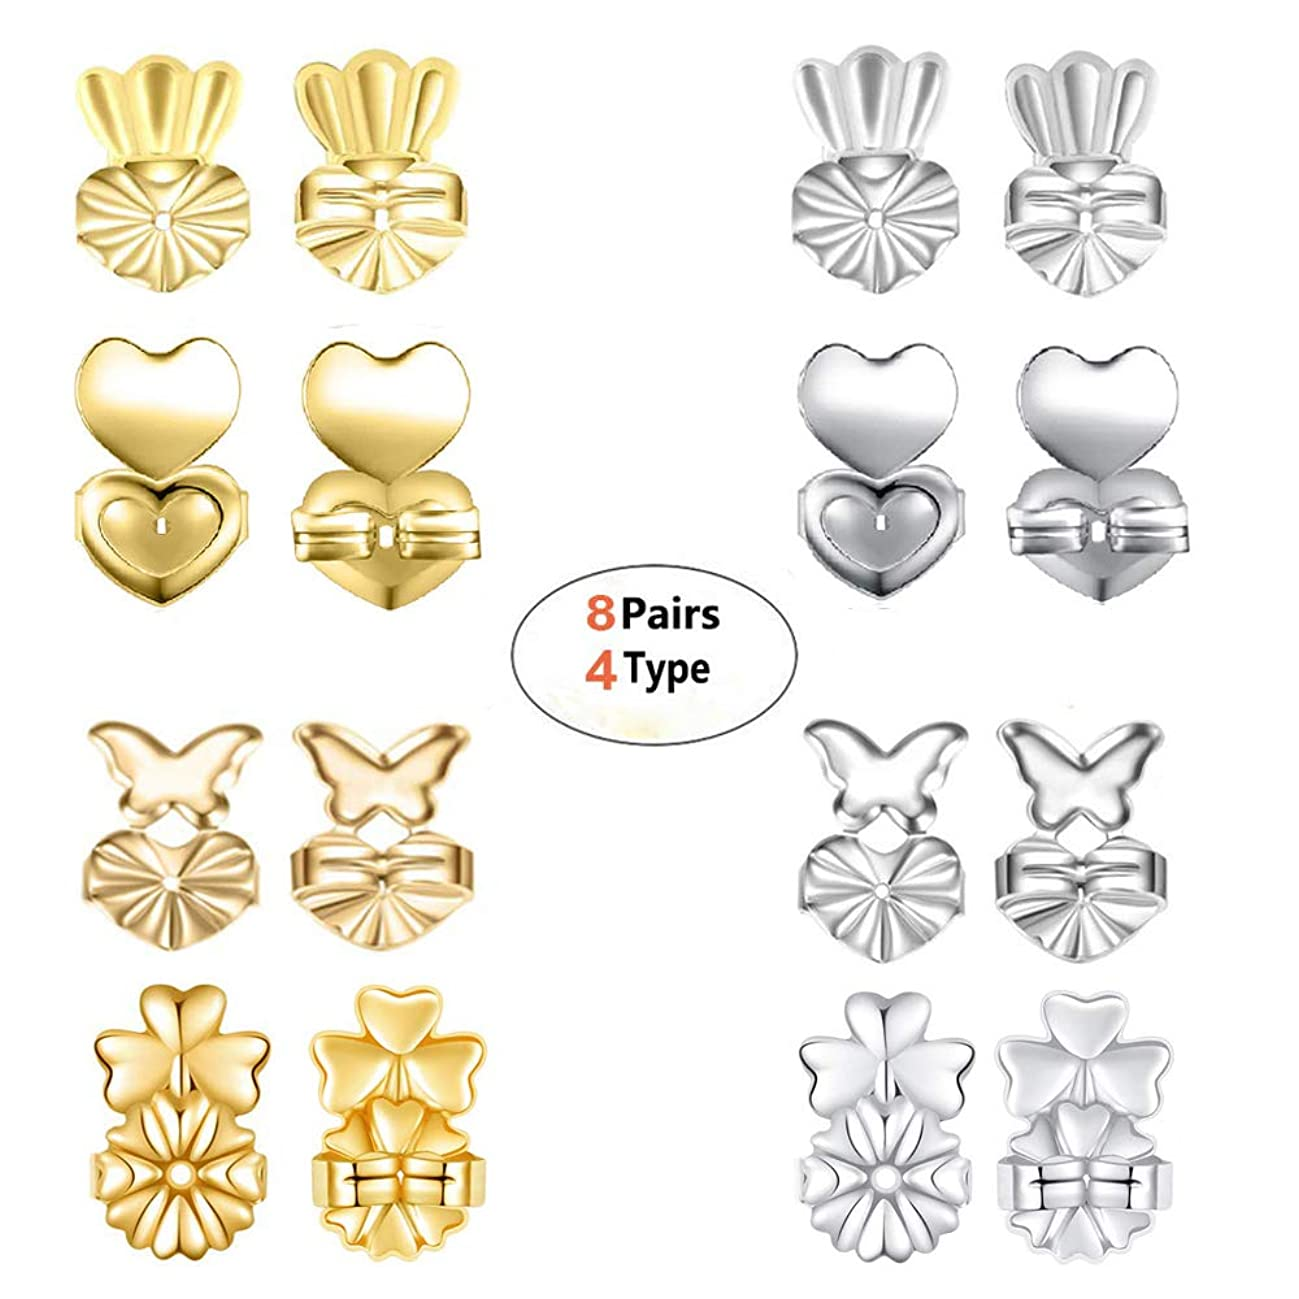 Earring Backs - Magic BAX 8 Pairs Earring Backs Set Adjustable Hypoallergenic Safety Locking Stud Earring Lifts Accessories for Women and Girls(4 Silvery, 4 Gold)